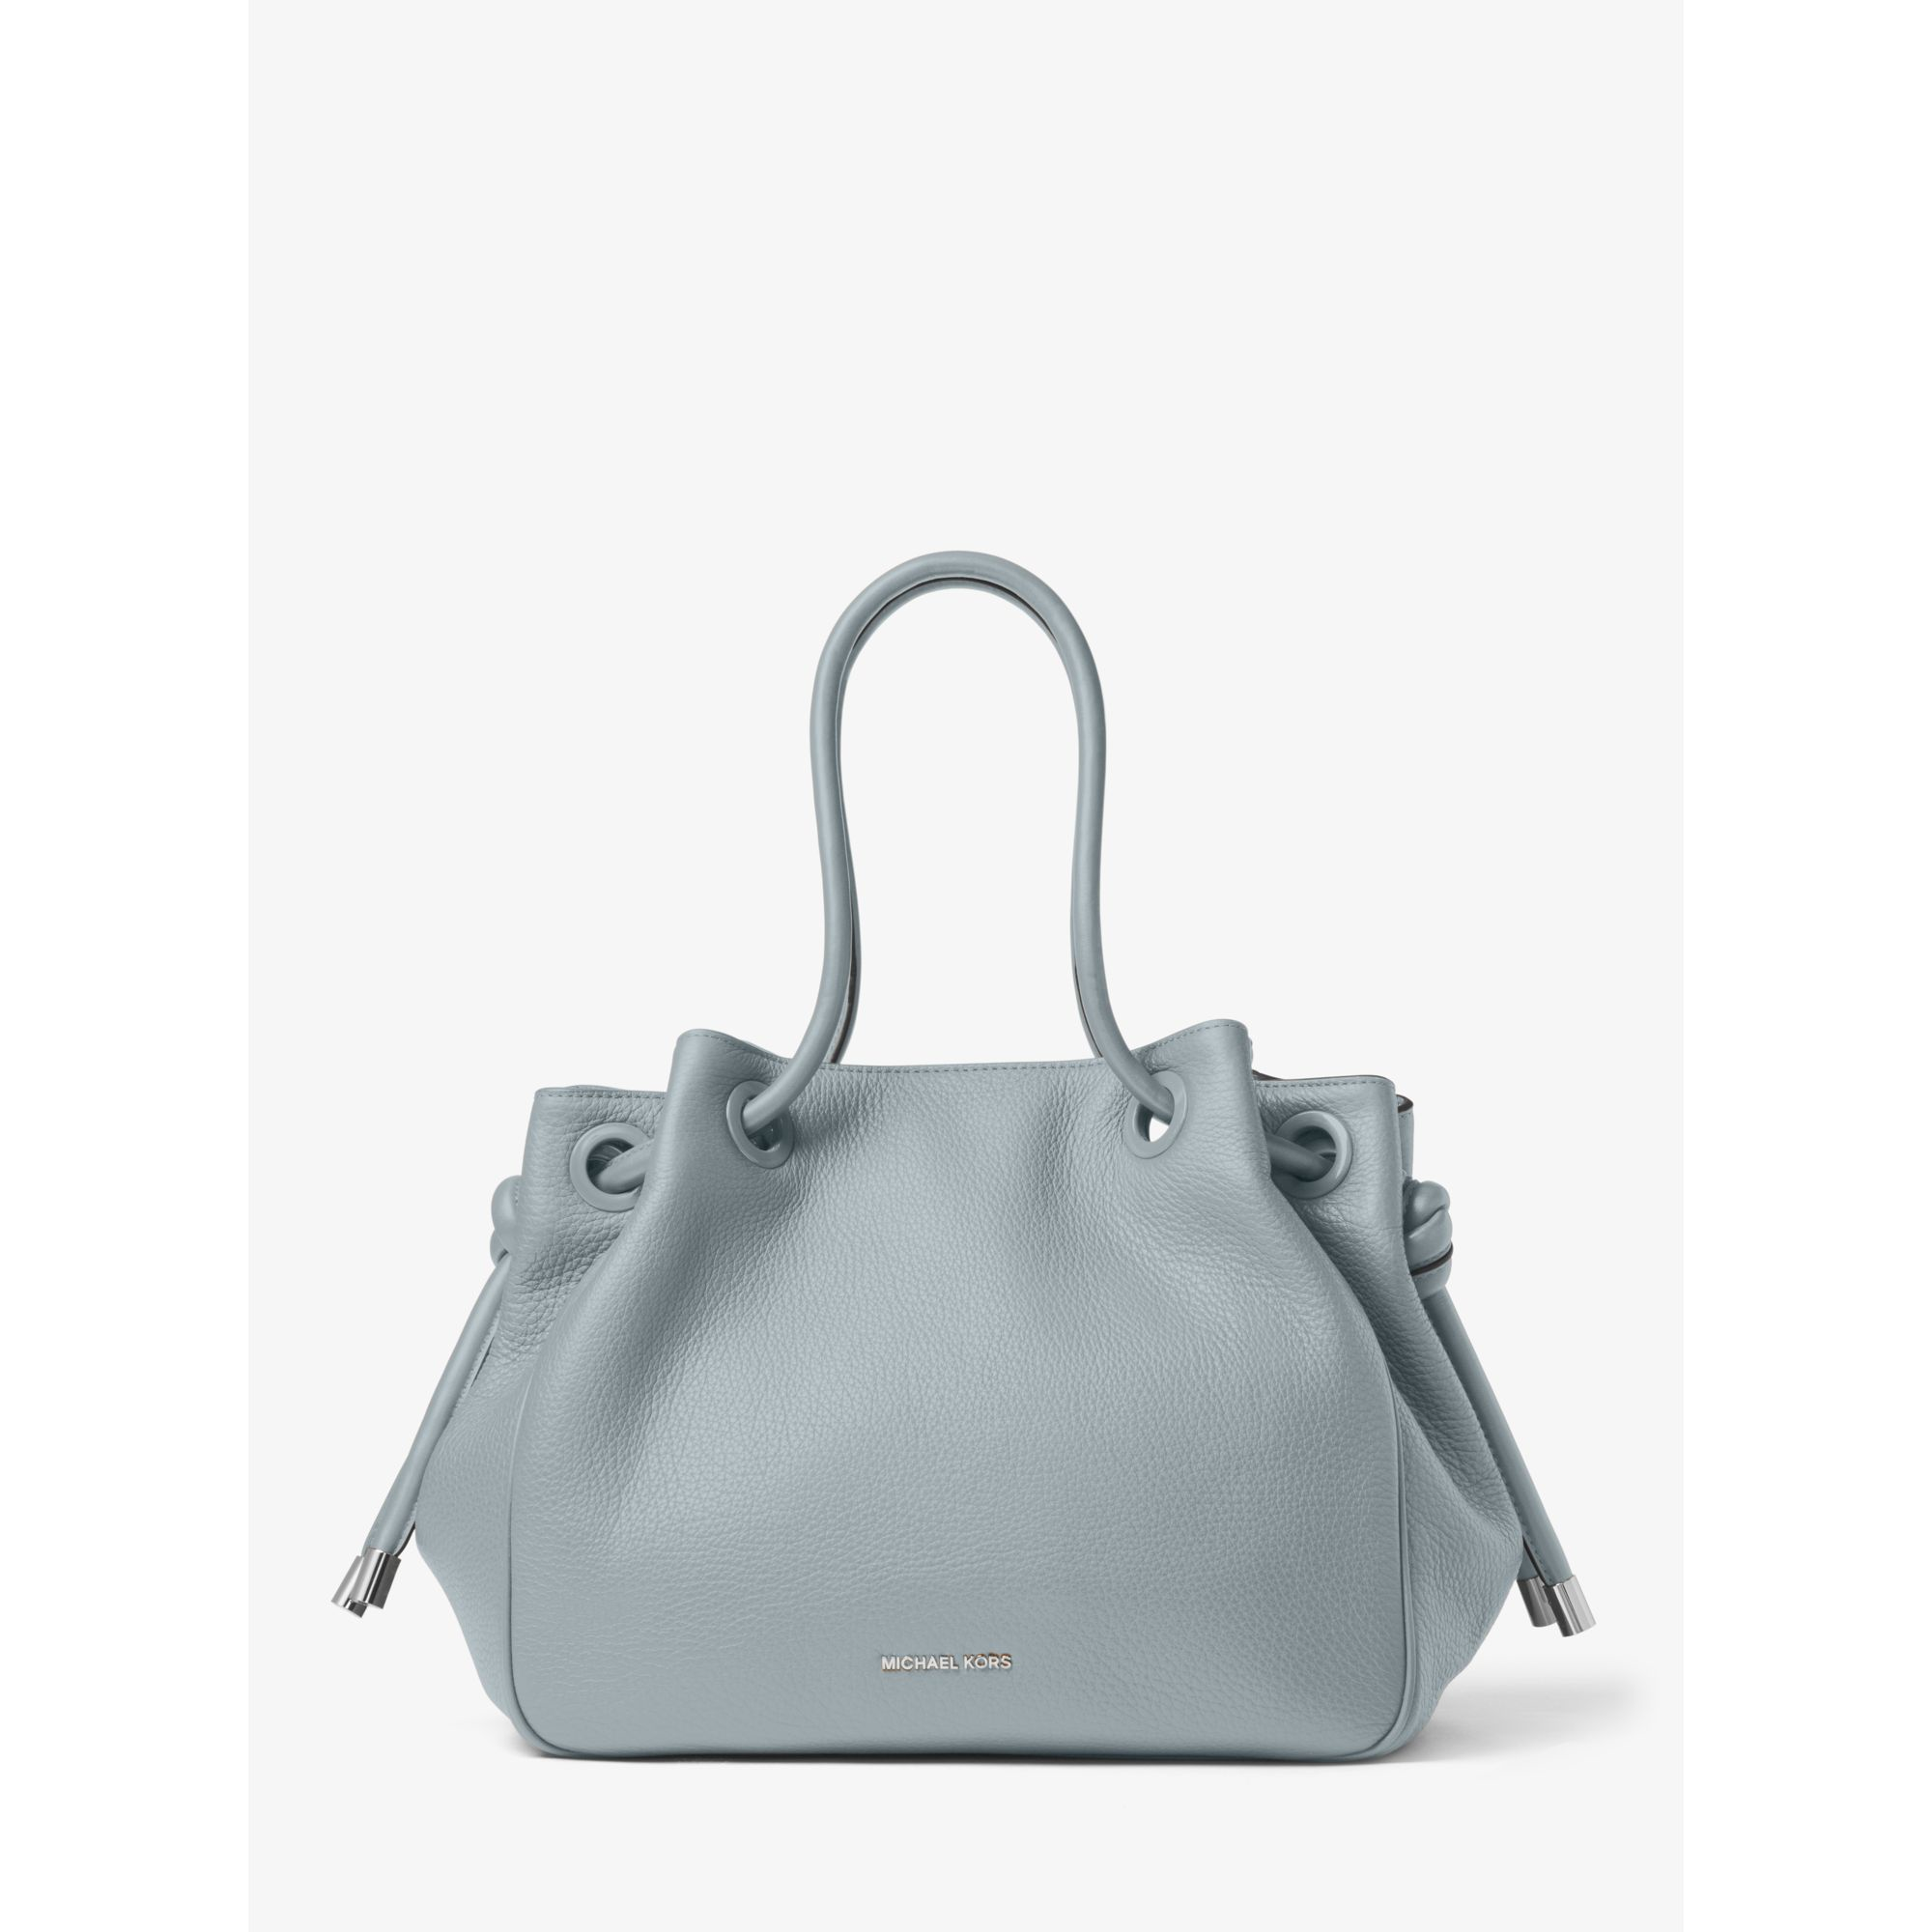 9114d9dd0111 Michael Kors Dalia Large Leather Tote in Blue - Lyst